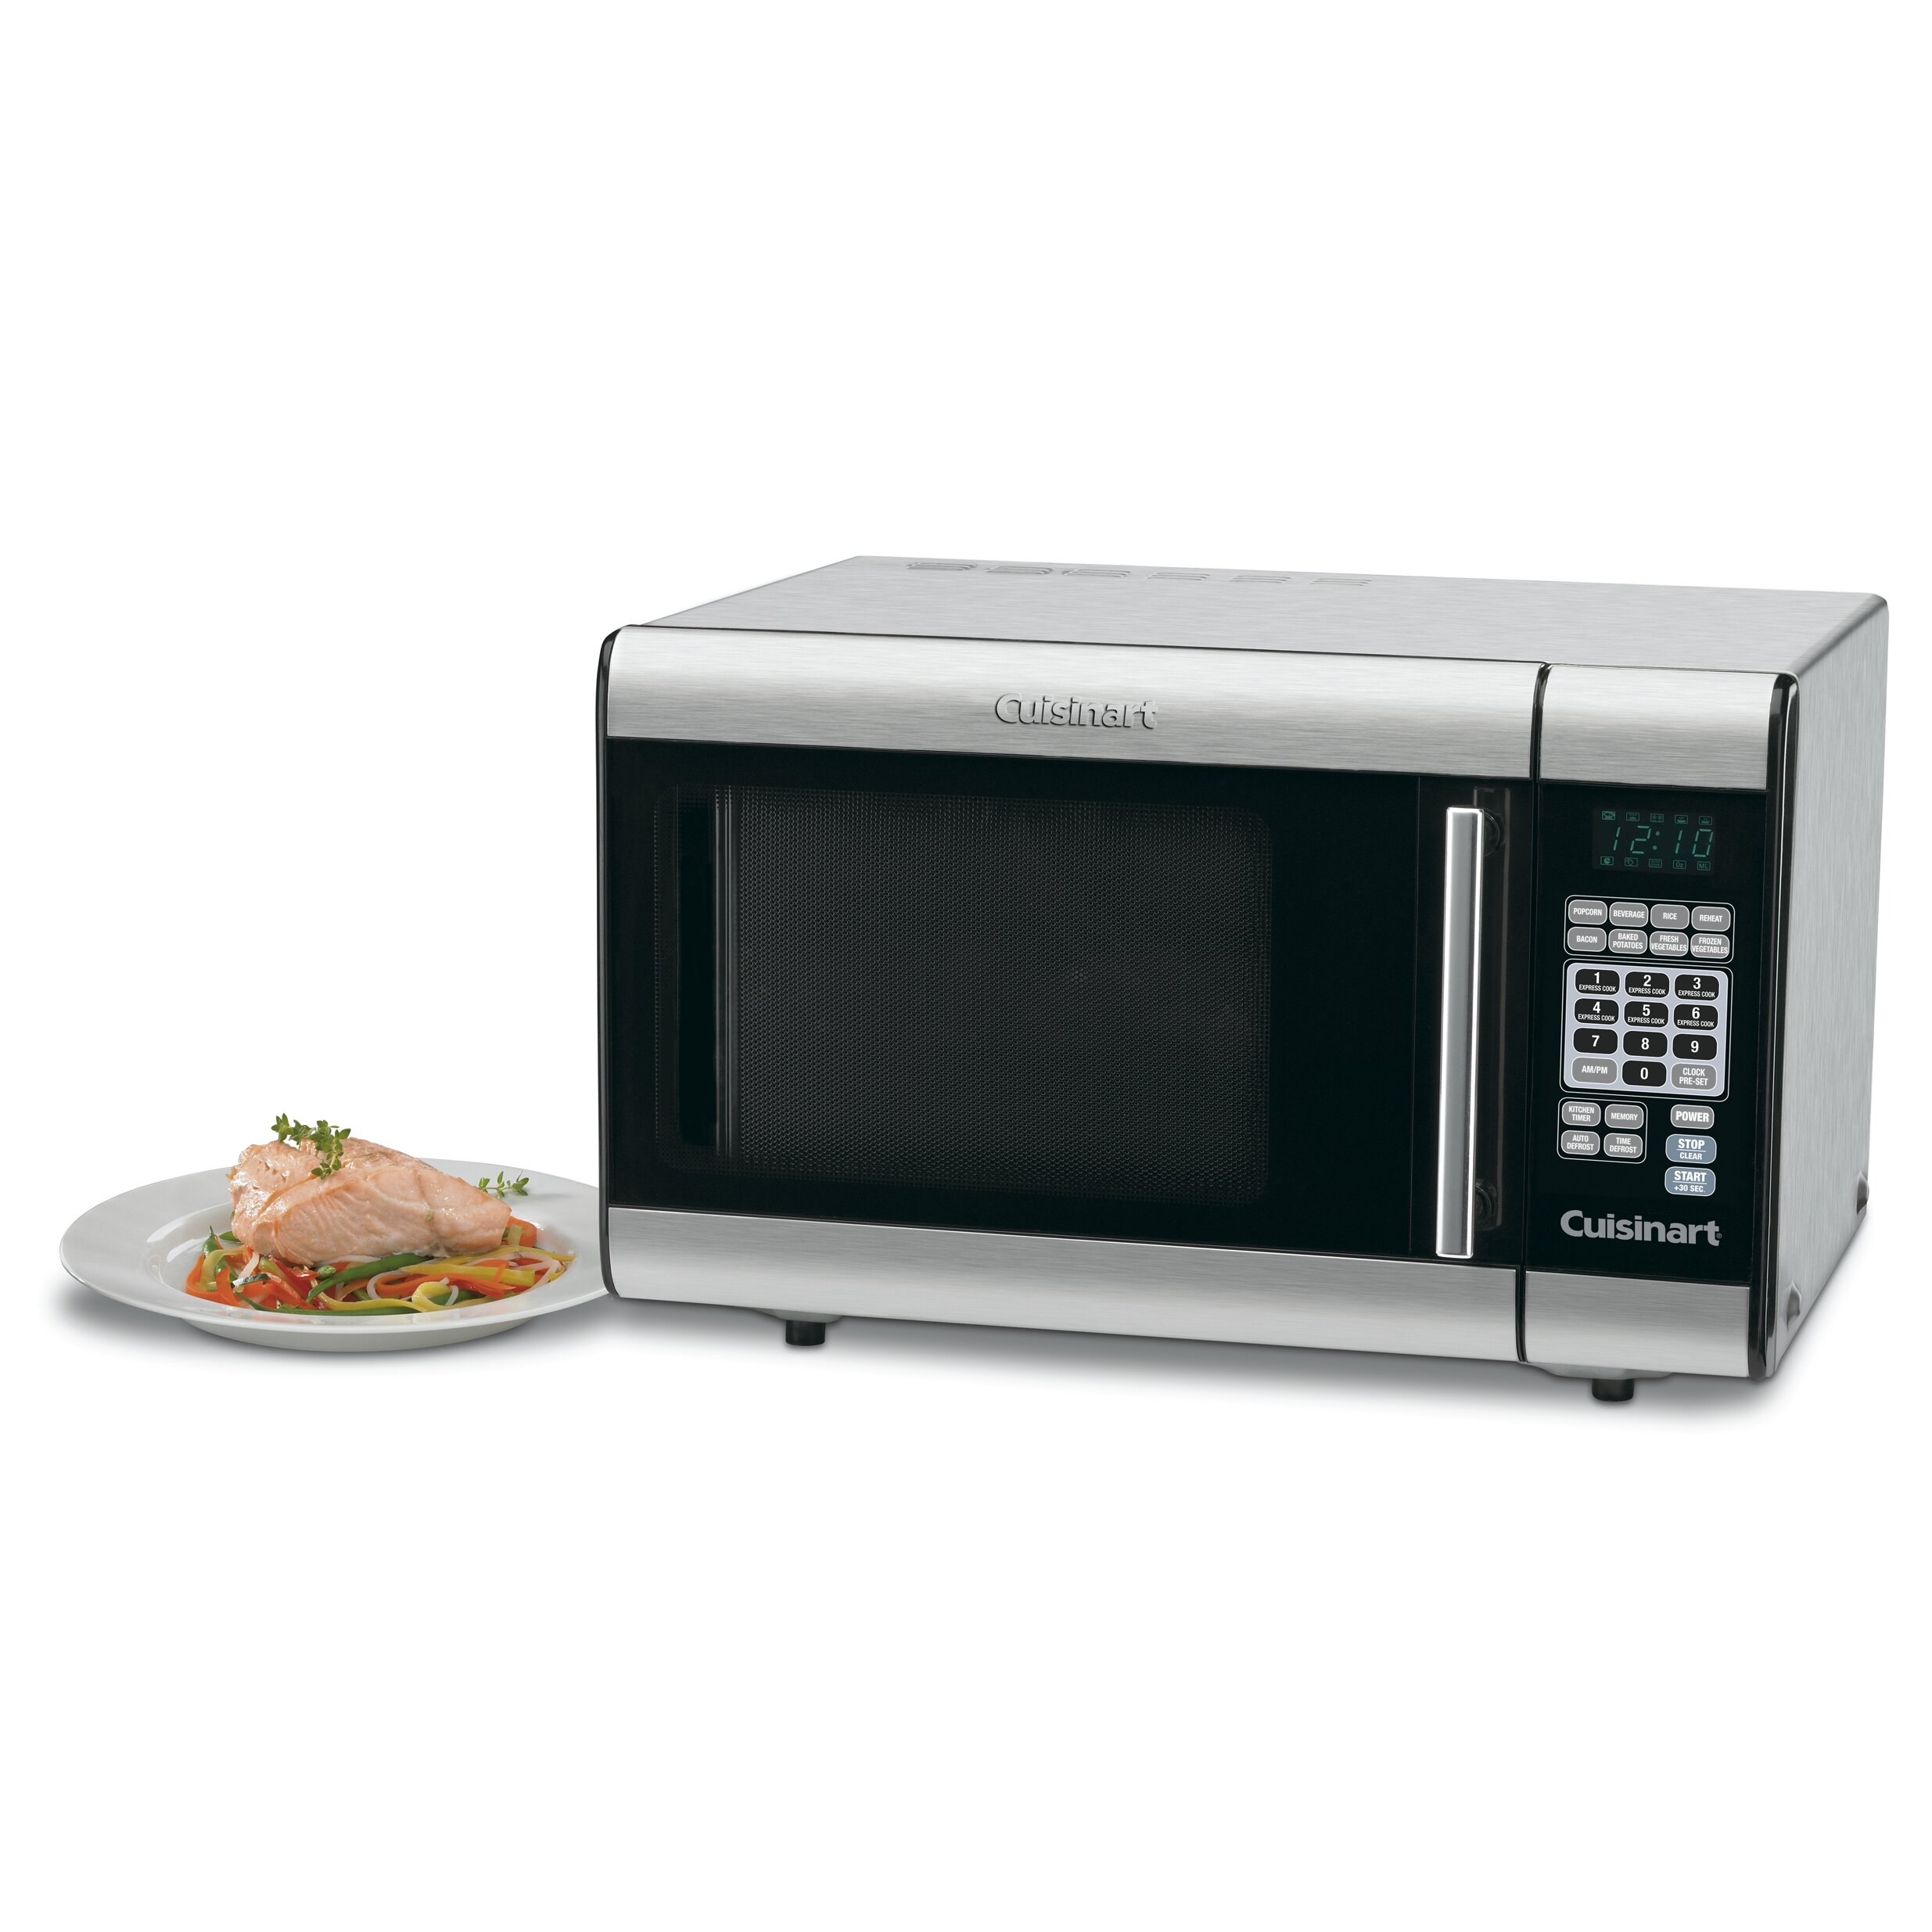 kenmore elite microwave convection oven manual - Microwave Convection Oven